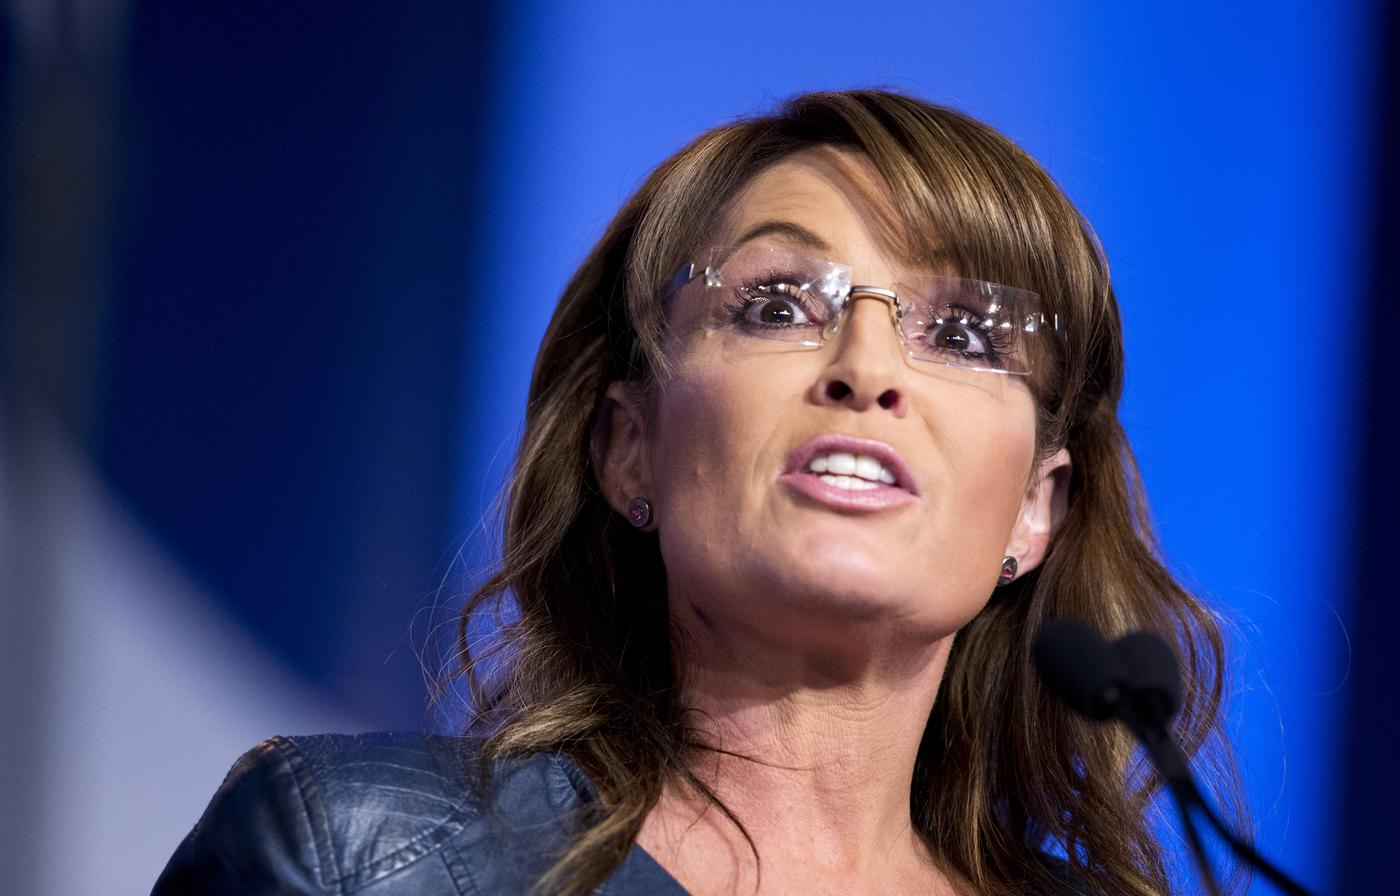 Why Obama won't get a Christmas card from Sarah Palin